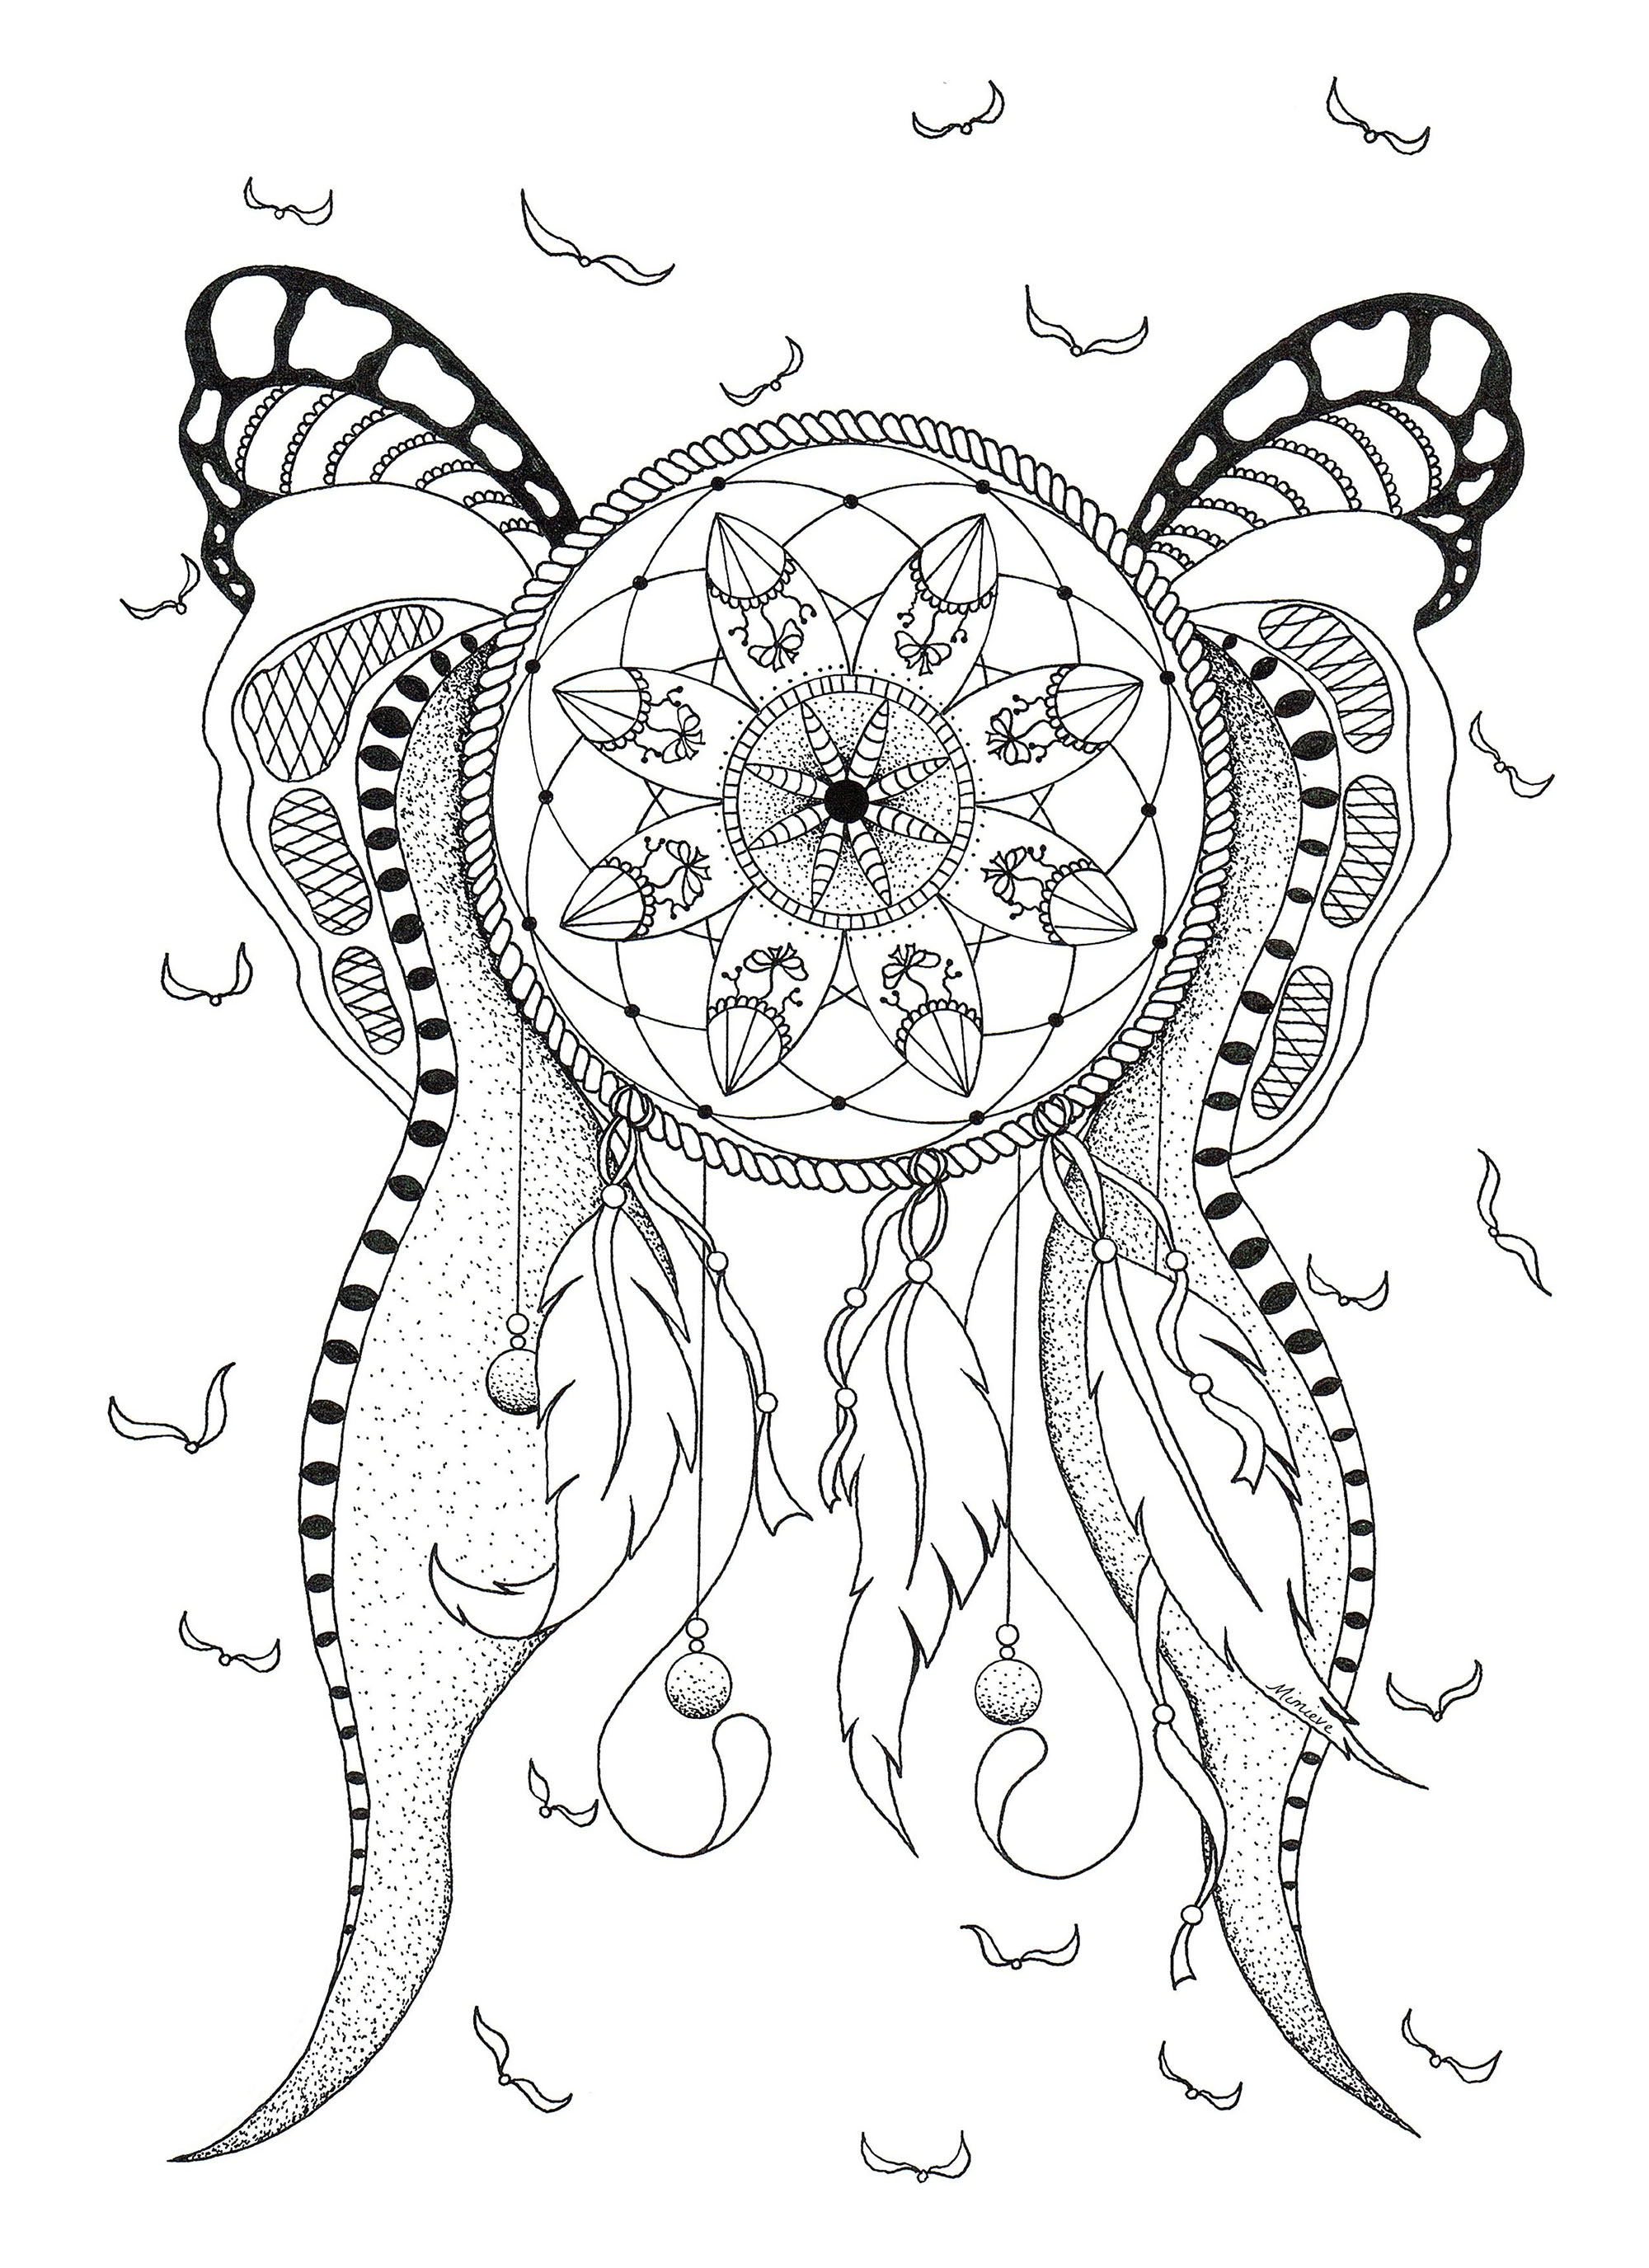 attrape reve attrape r ves dreamcatchers coloriages difficiles pour adultes. Black Bedroom Furniture Sets. Home Design Ideas